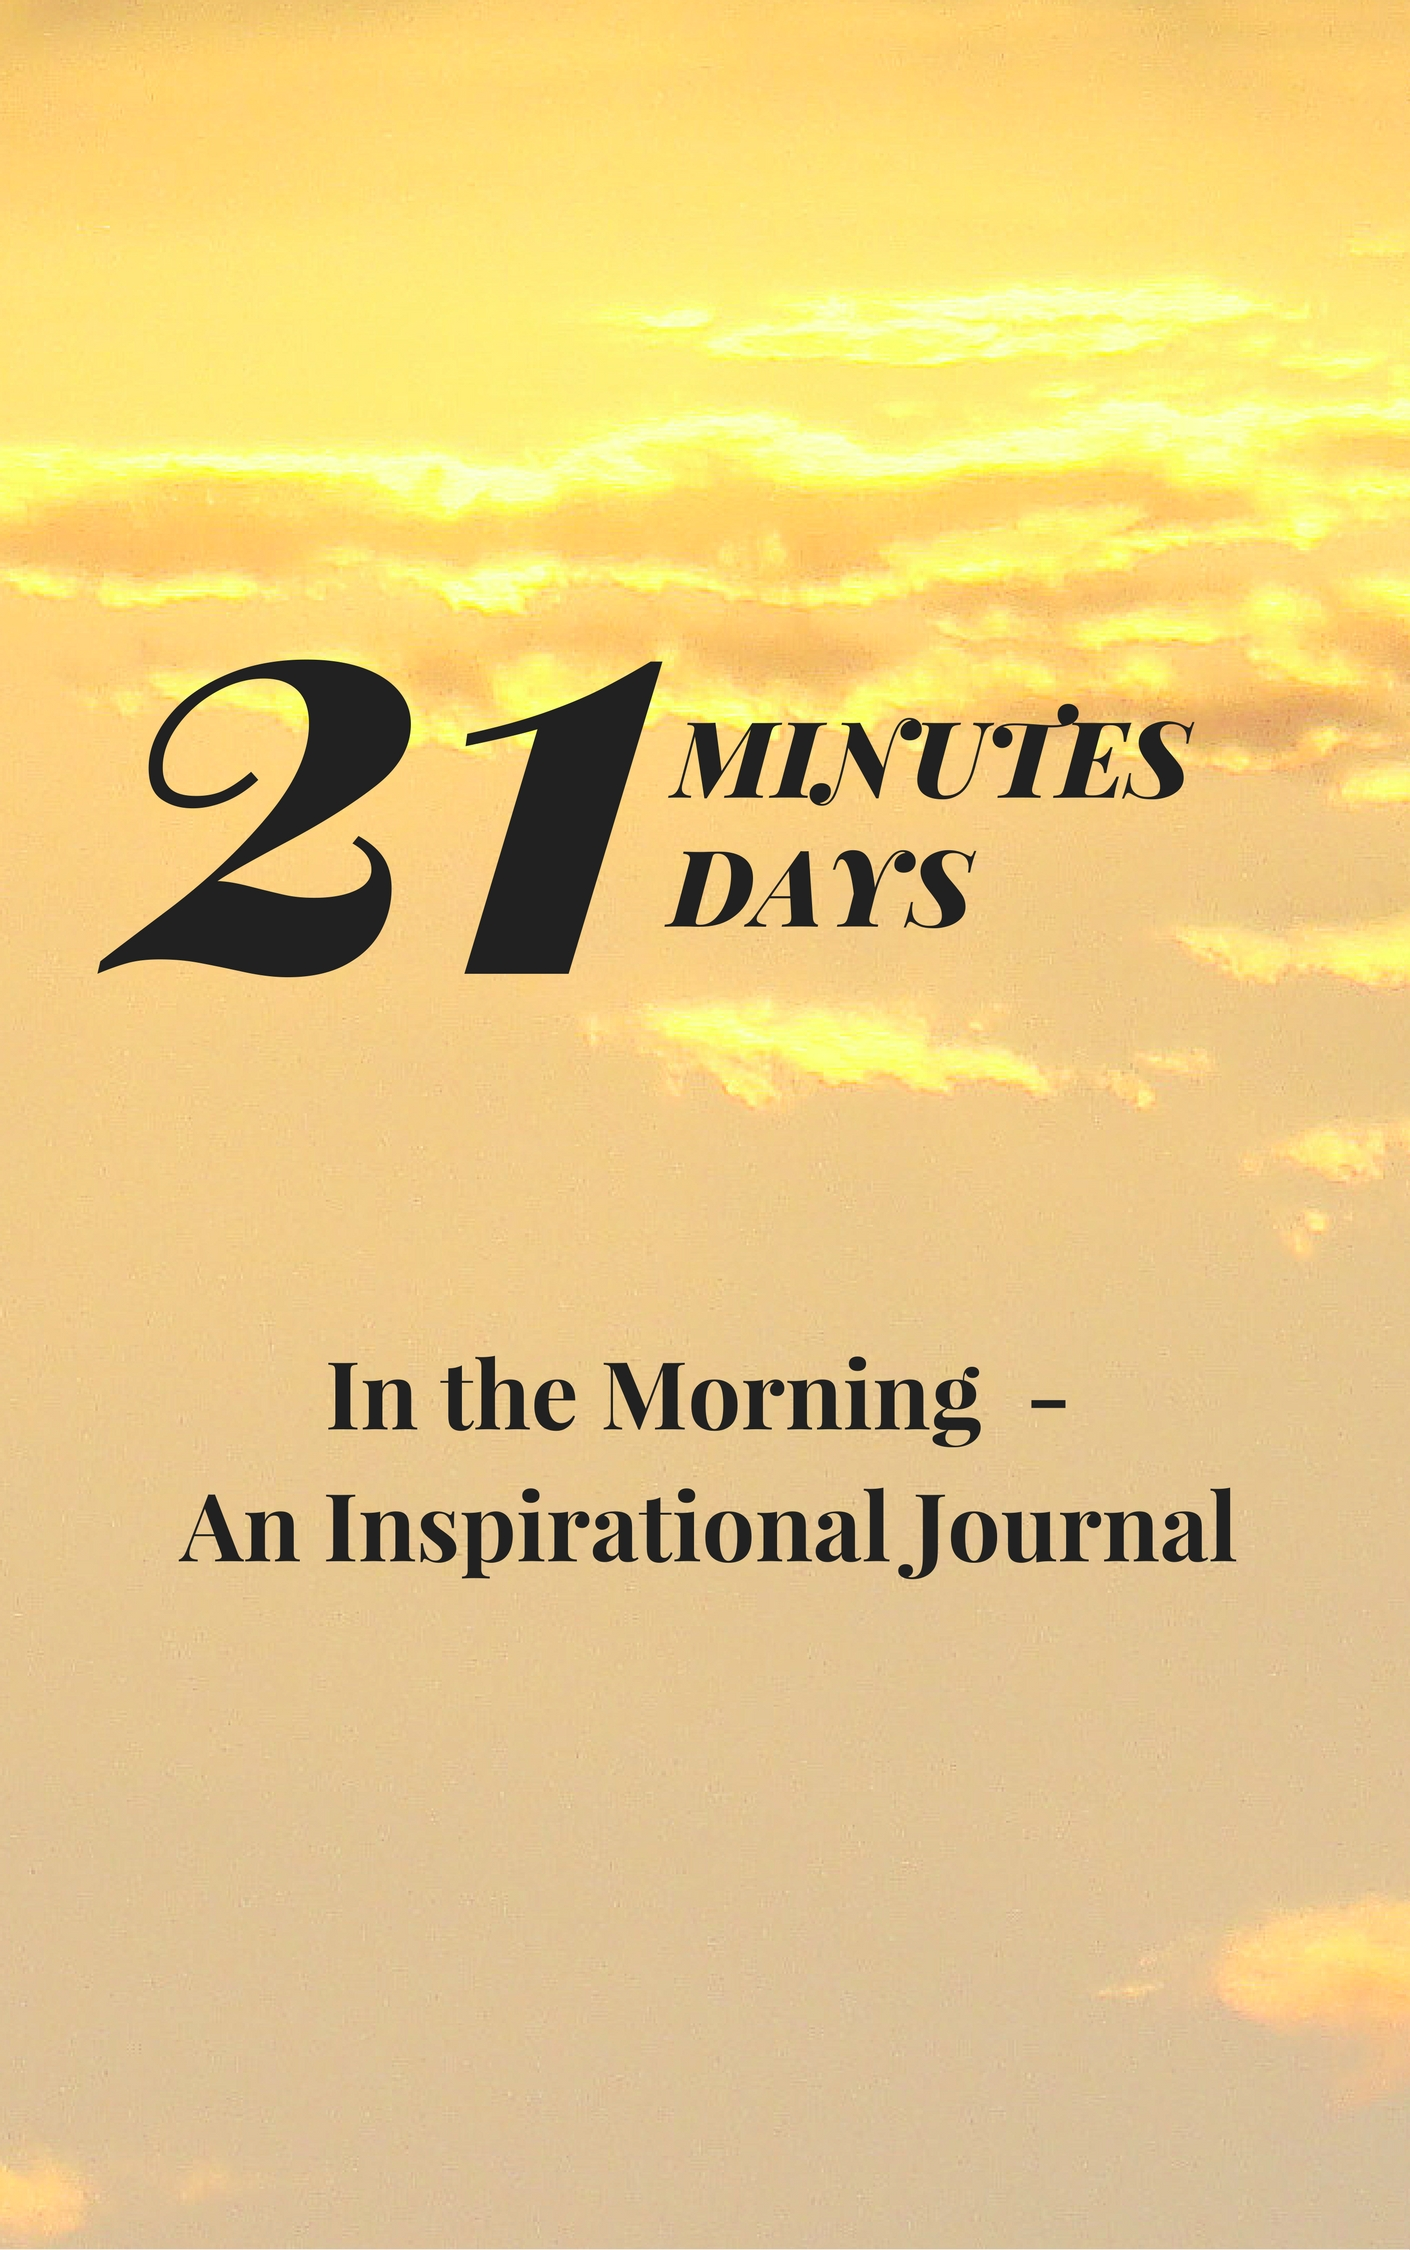 21 Minutes 21 Days Inspirational Journey VIP Package